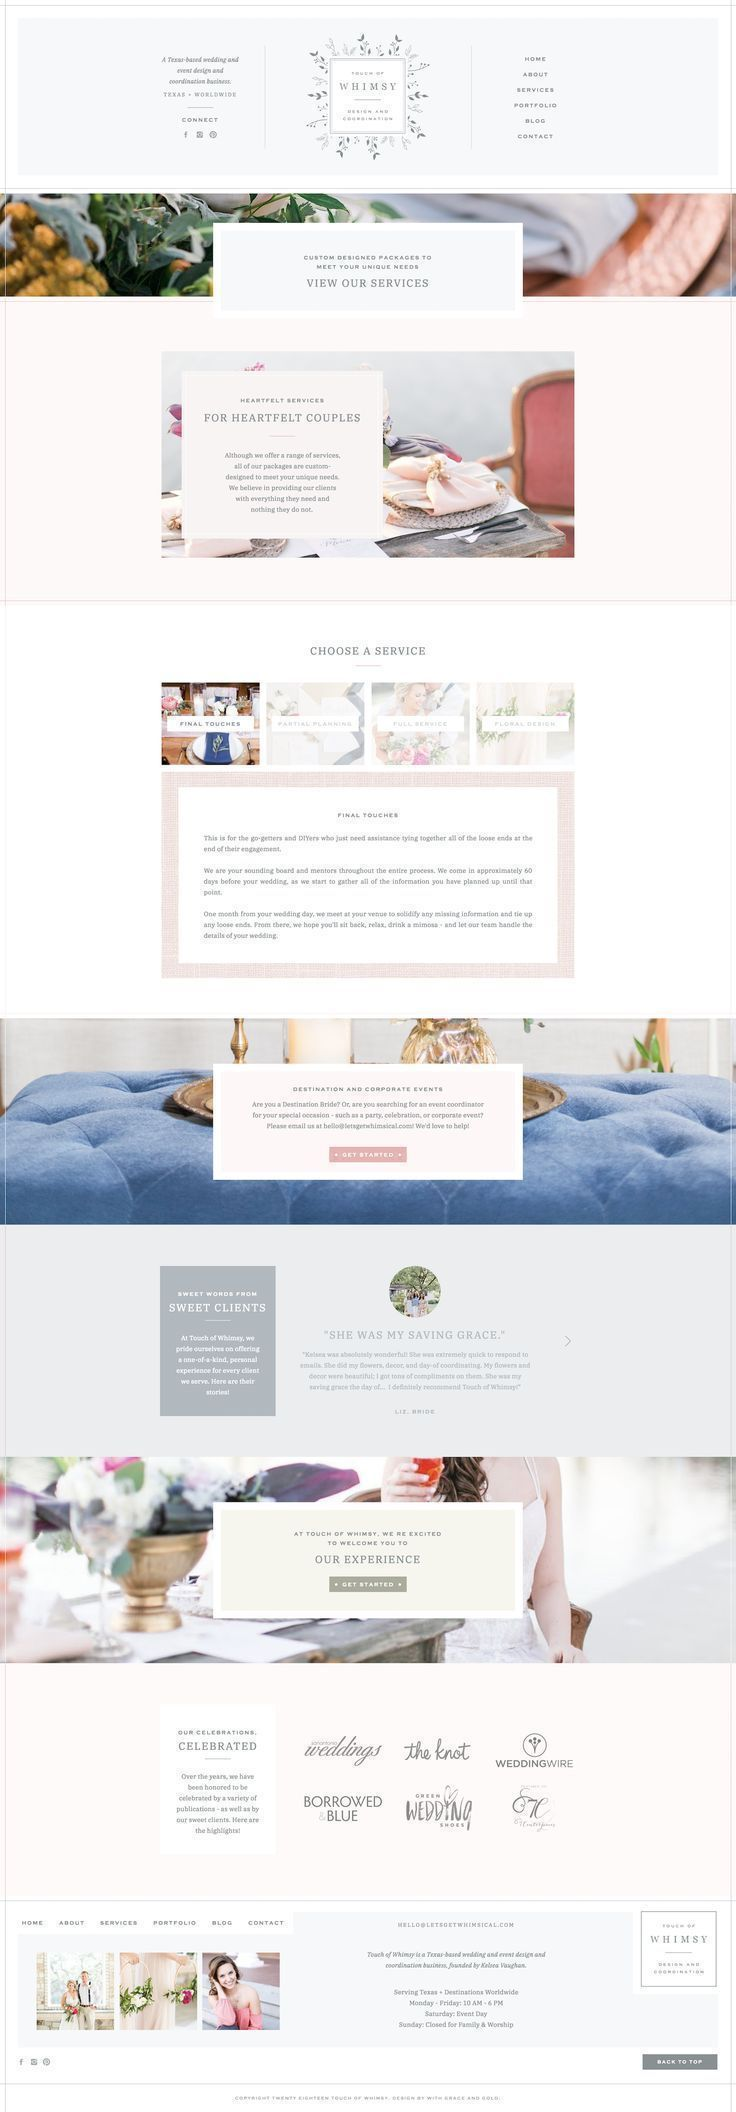 How To Design A Website The 4 Stages Process Web